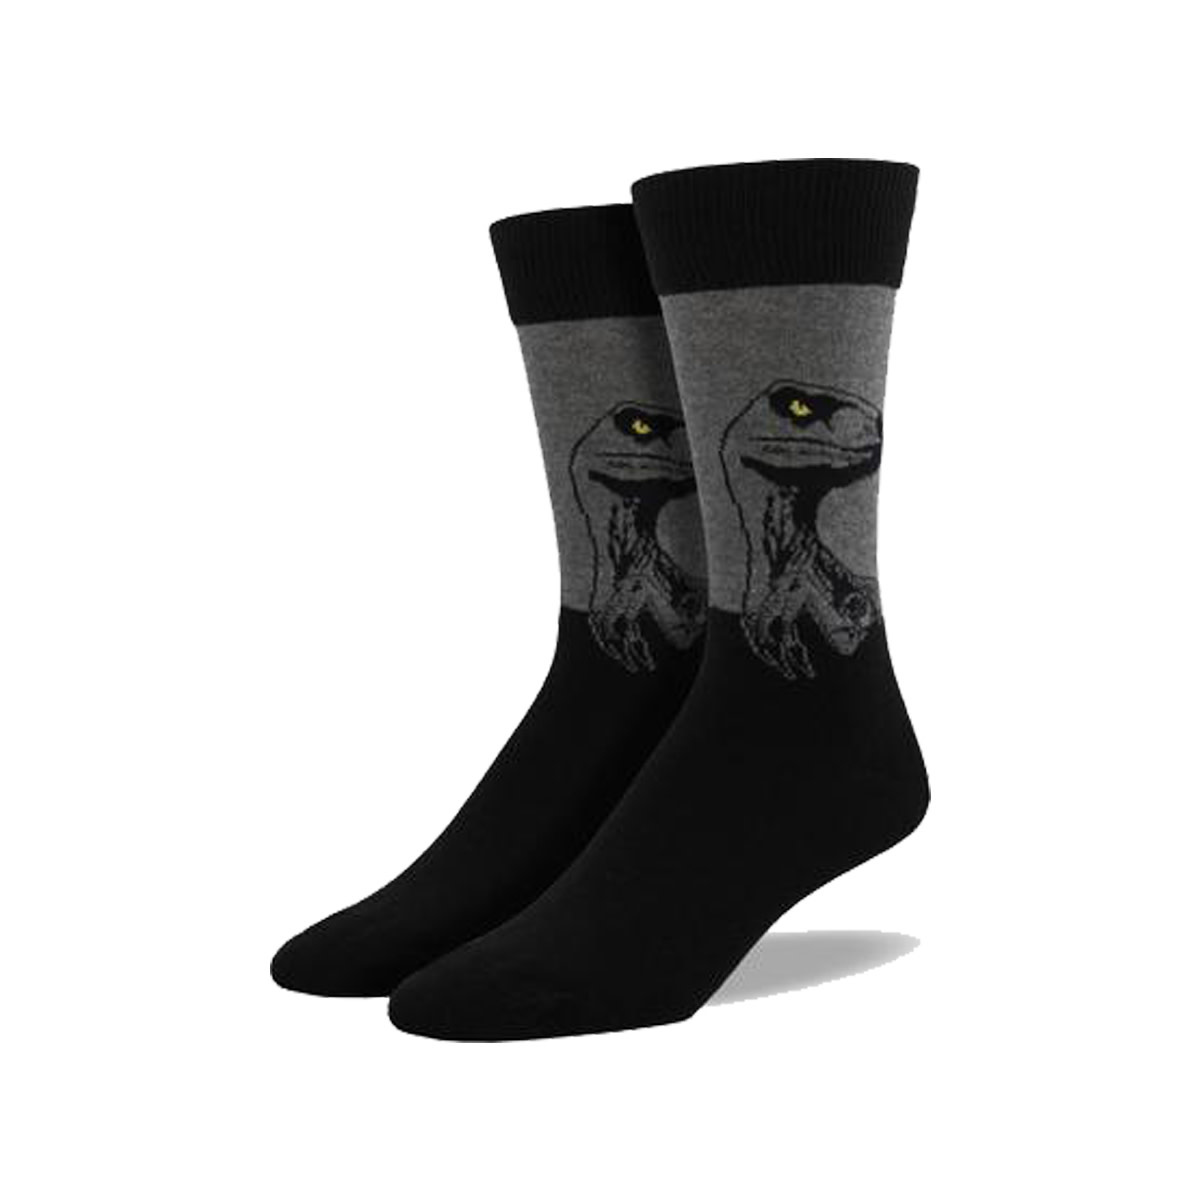 Socksmith Socksmith Men's Cotton Crew Socks King Size Raptor Charcoal M 12 - 15